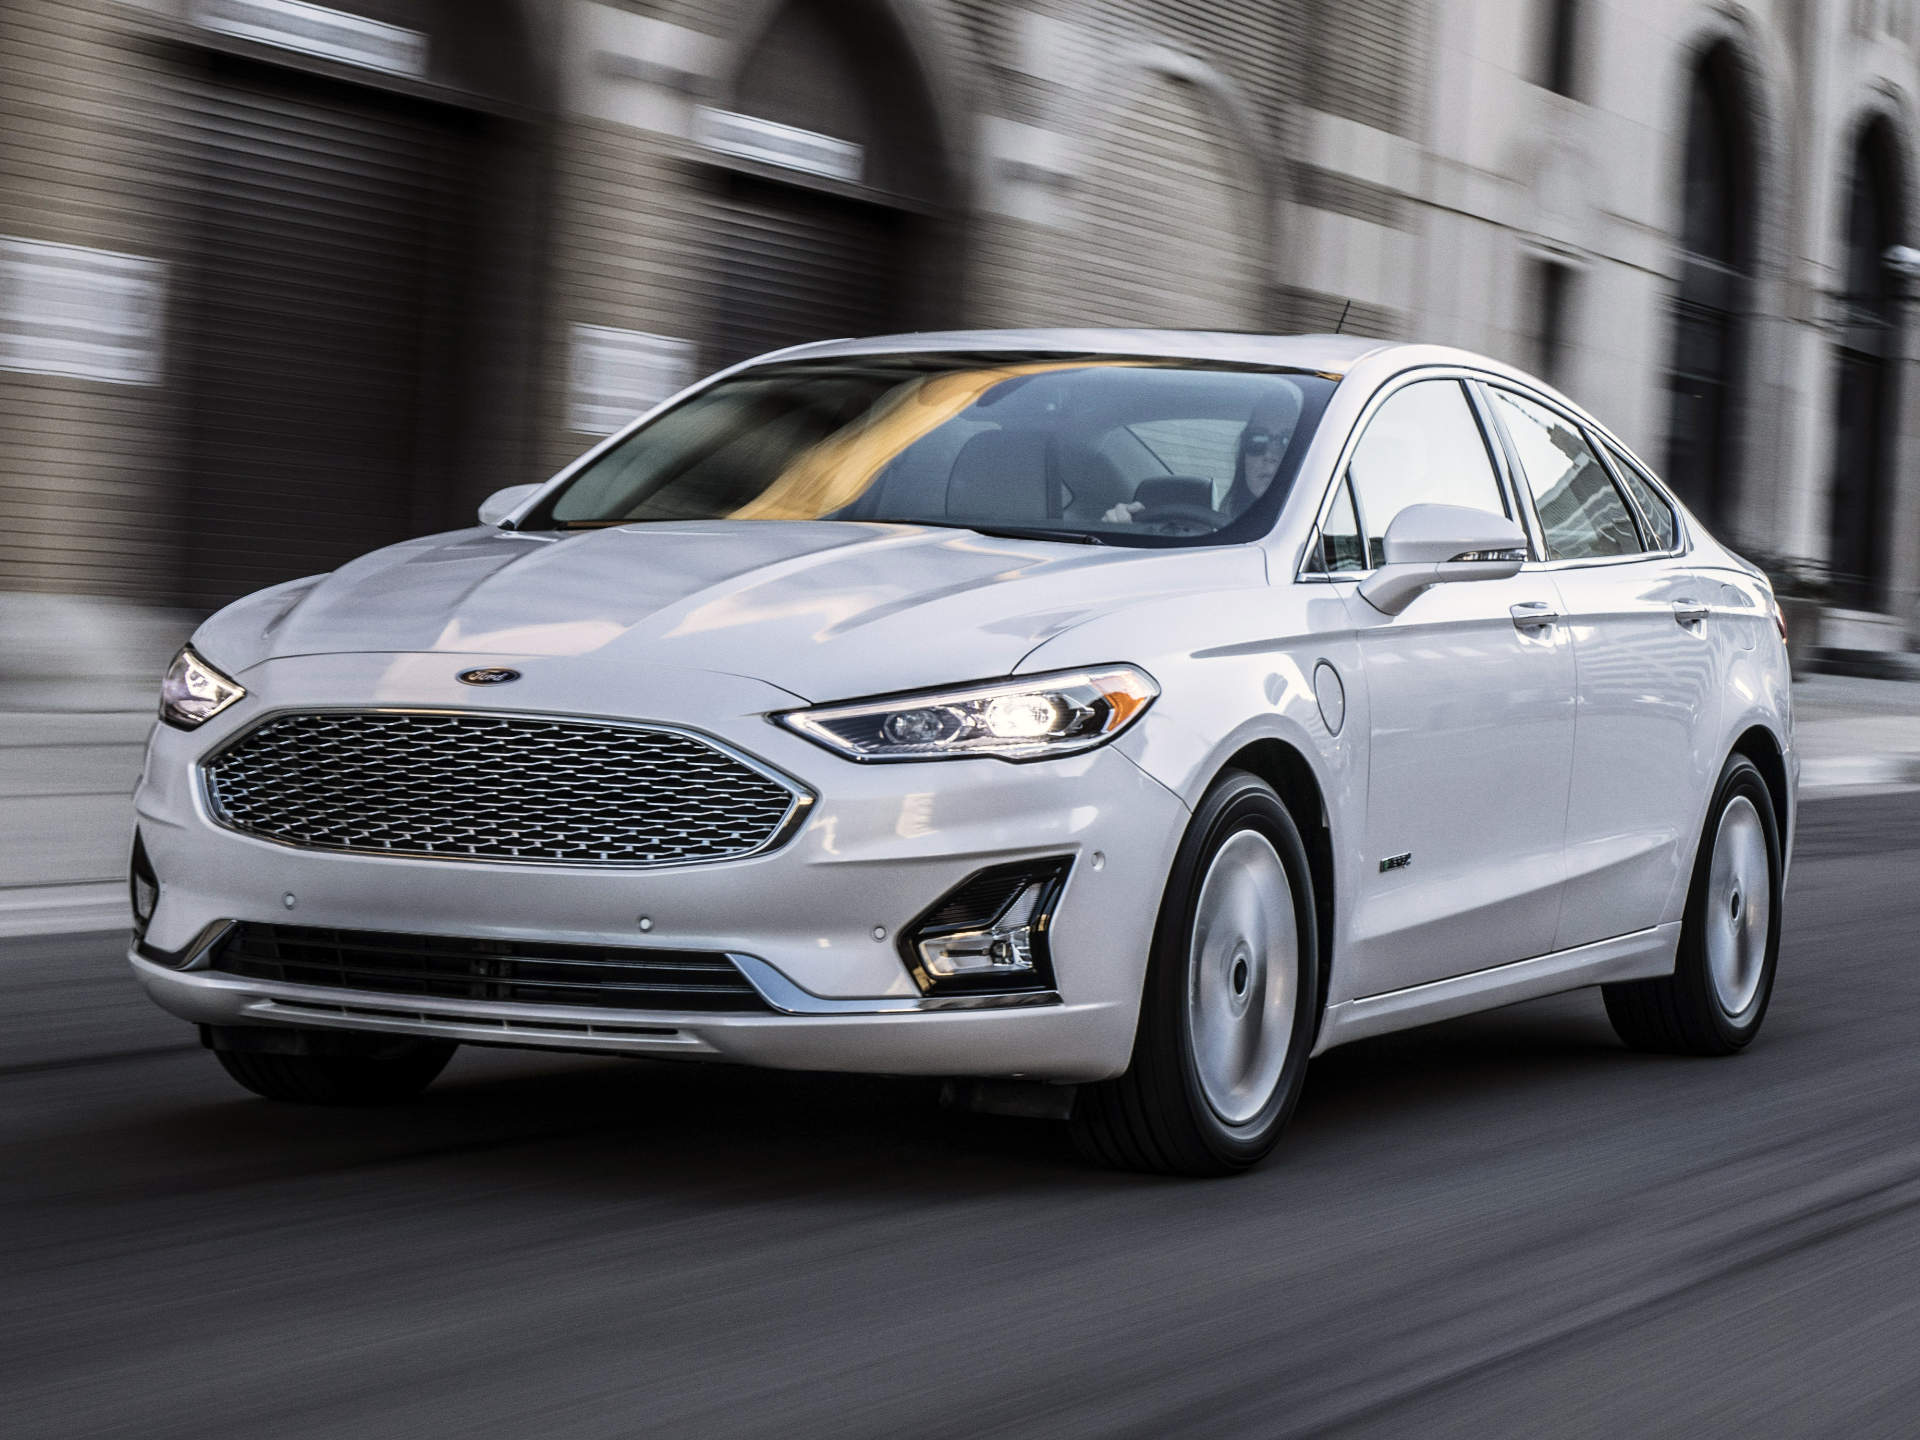 2020 Ford Fusion New Model and Performance